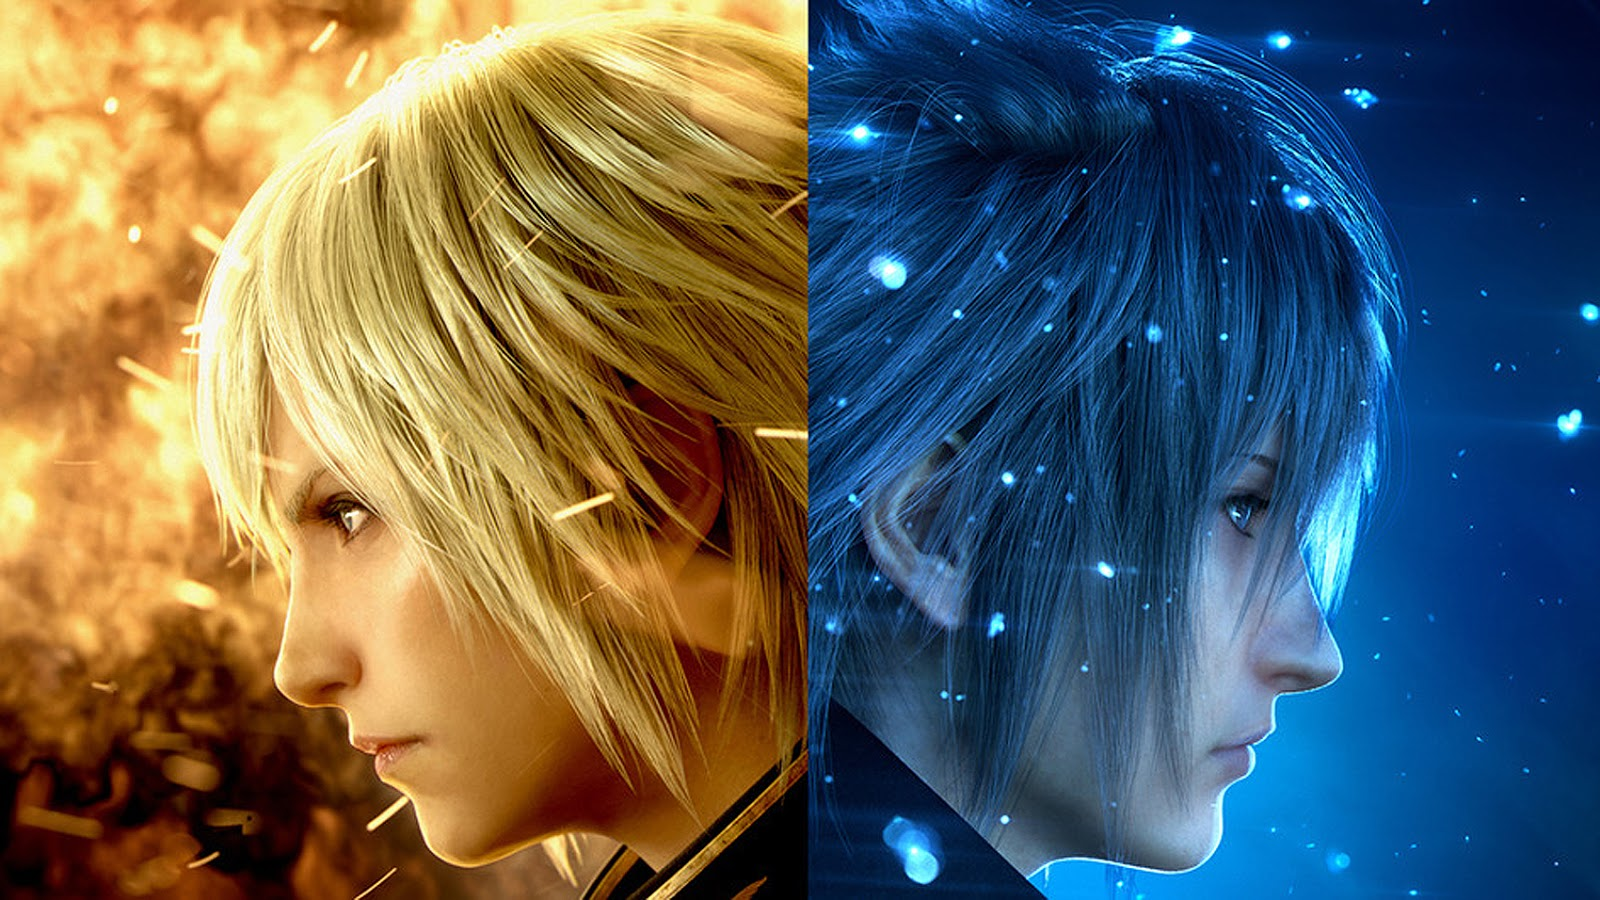 Final Fantasy 15 Wallpapers: HD Wallpapers : Final Fantasy XV HD Wallpapers